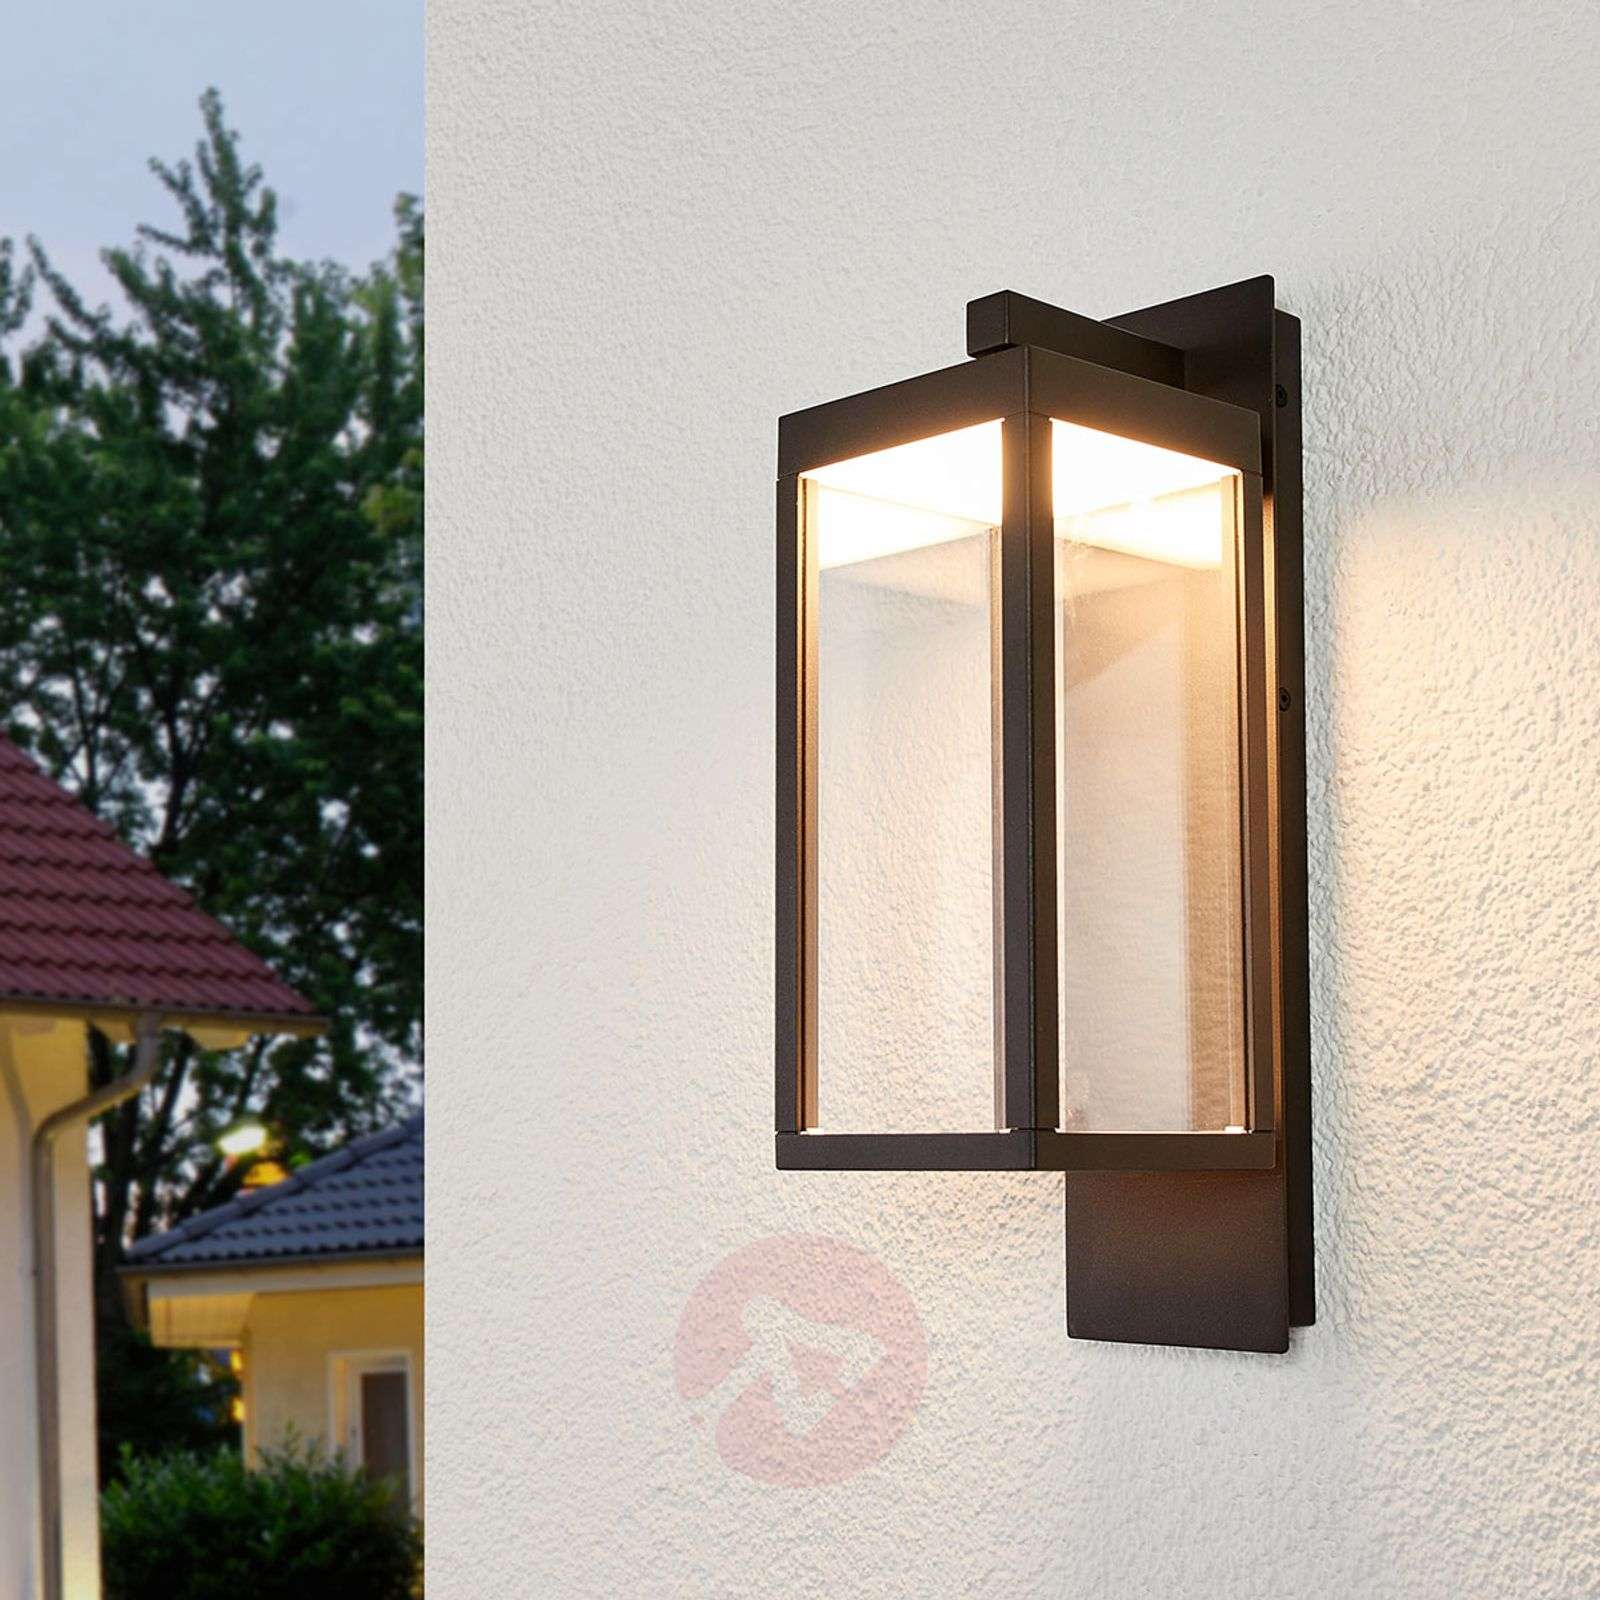 Acquista applique led da esterni ferdinand a lanterna lampade